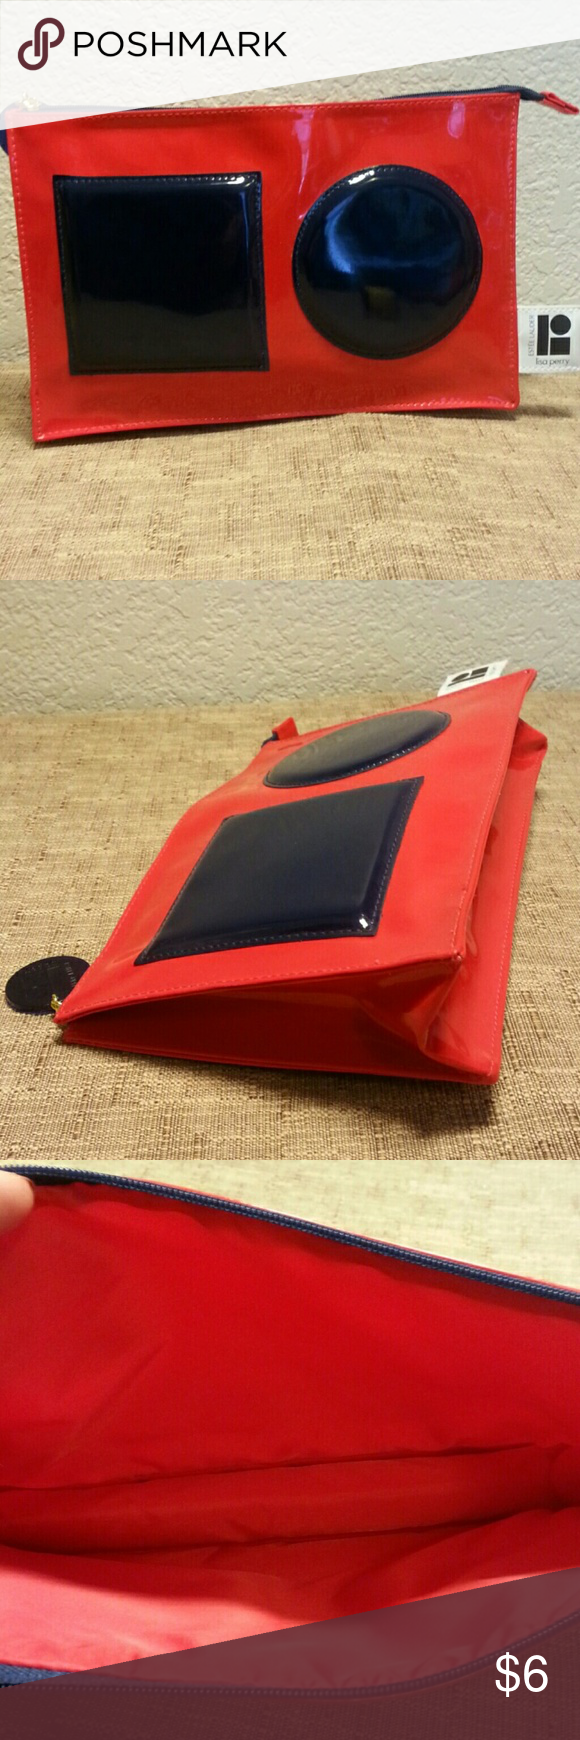 Estee Lauder make-up bag Red and navy. No pockets. Excellent condition. 10.5x7 Estee Lauder Bags Cosmetic Bags & Cases